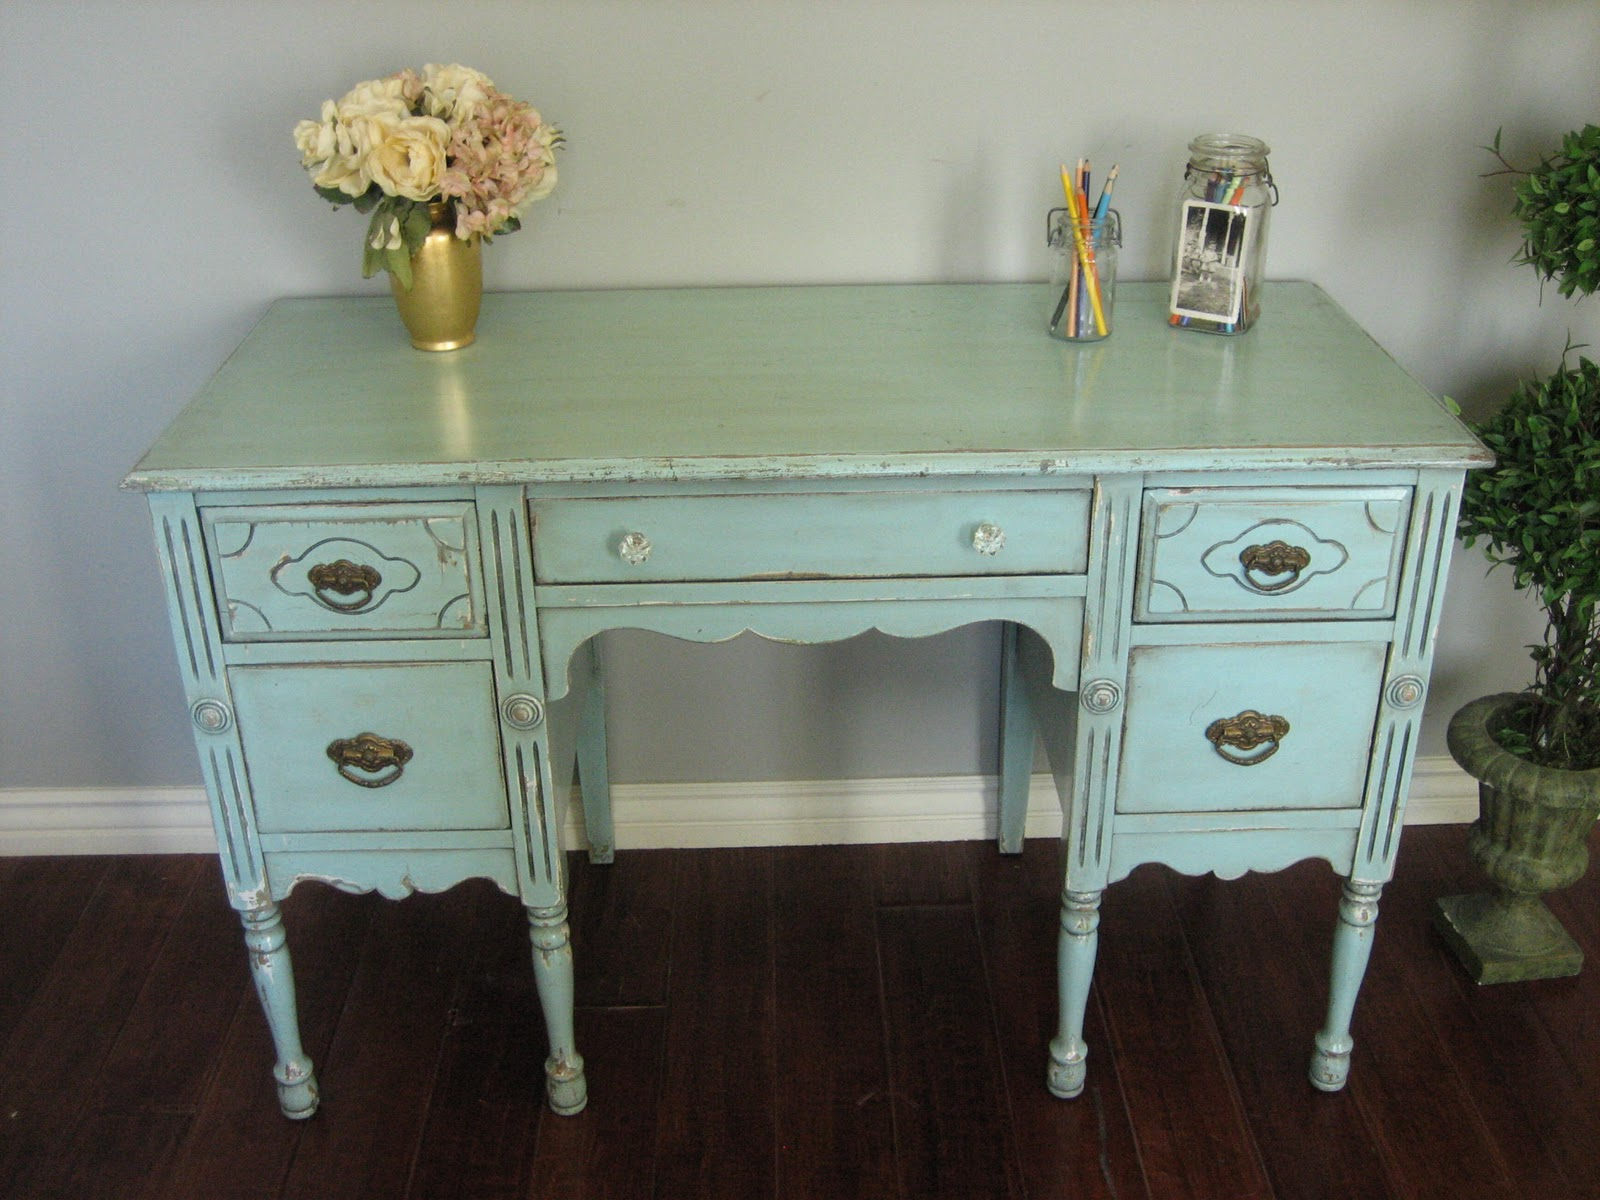 Shabby Chic Furniture Of Shabby Chic Furniture Finishing Apartments I Like Blog